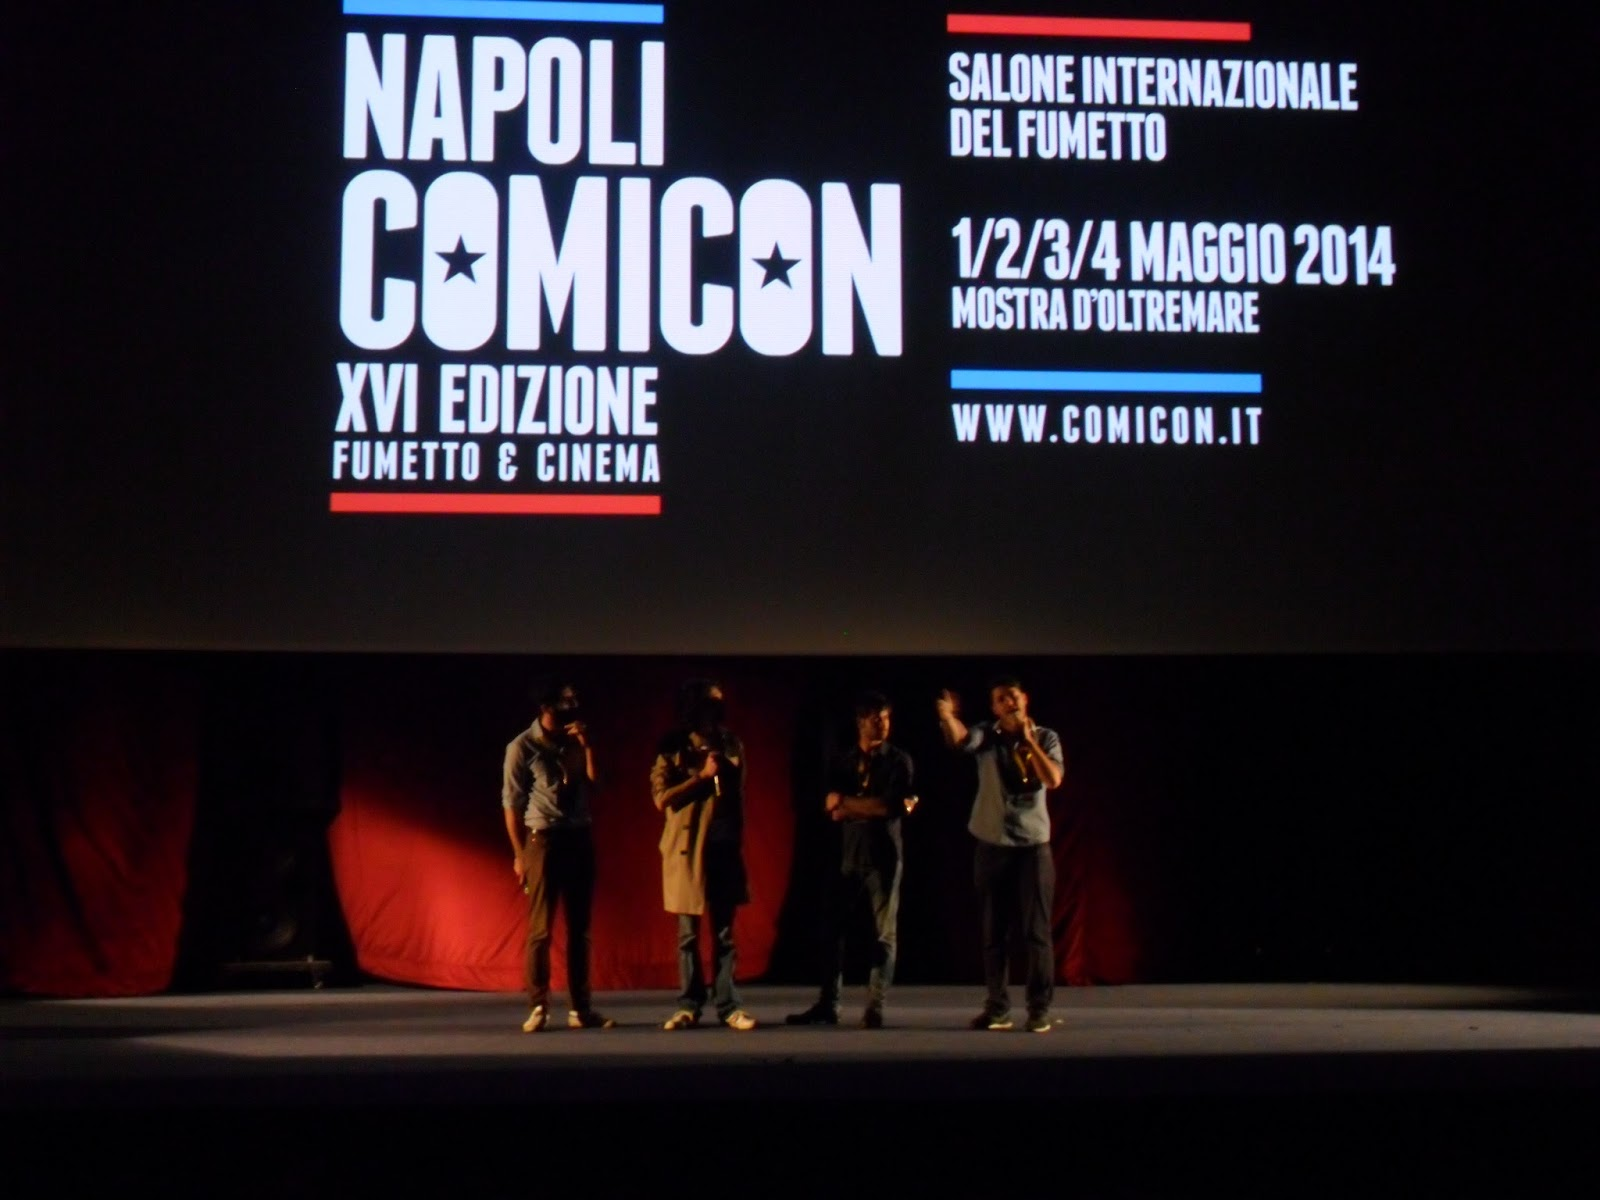 dibiagio-youtuber-bonelli-comicon-napoli-2014-fumetto-cinema-foto